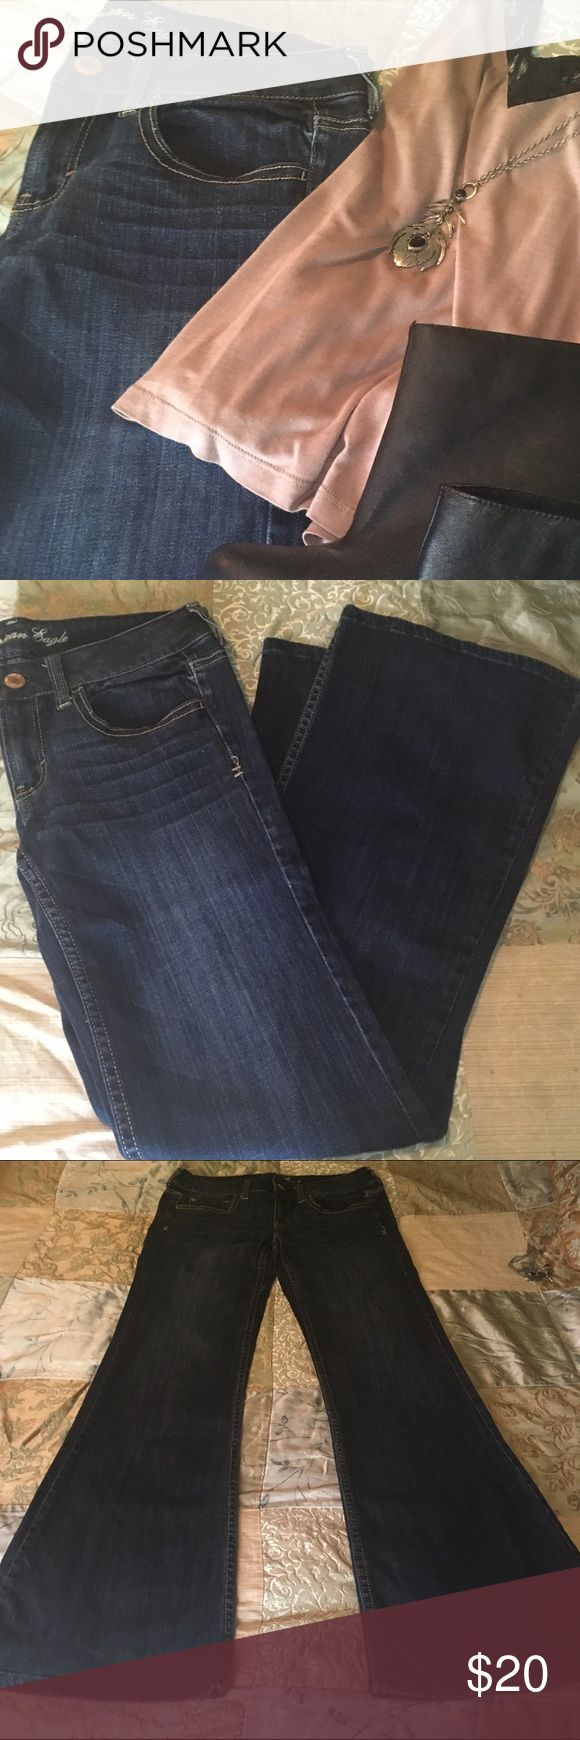 American Eagle Jeans AE Outfitters Hipster Flare Jeans size 6 long. 4 pairs available, 2 are in like new condition, 2 are in very good condition but have slight wear along bottom seem (picture 4). Price is for one pair. Jeans are 98% cotton 2% spandex and have slight stretch. American Eagle Outfitters Jeans Flare & Wide Leg